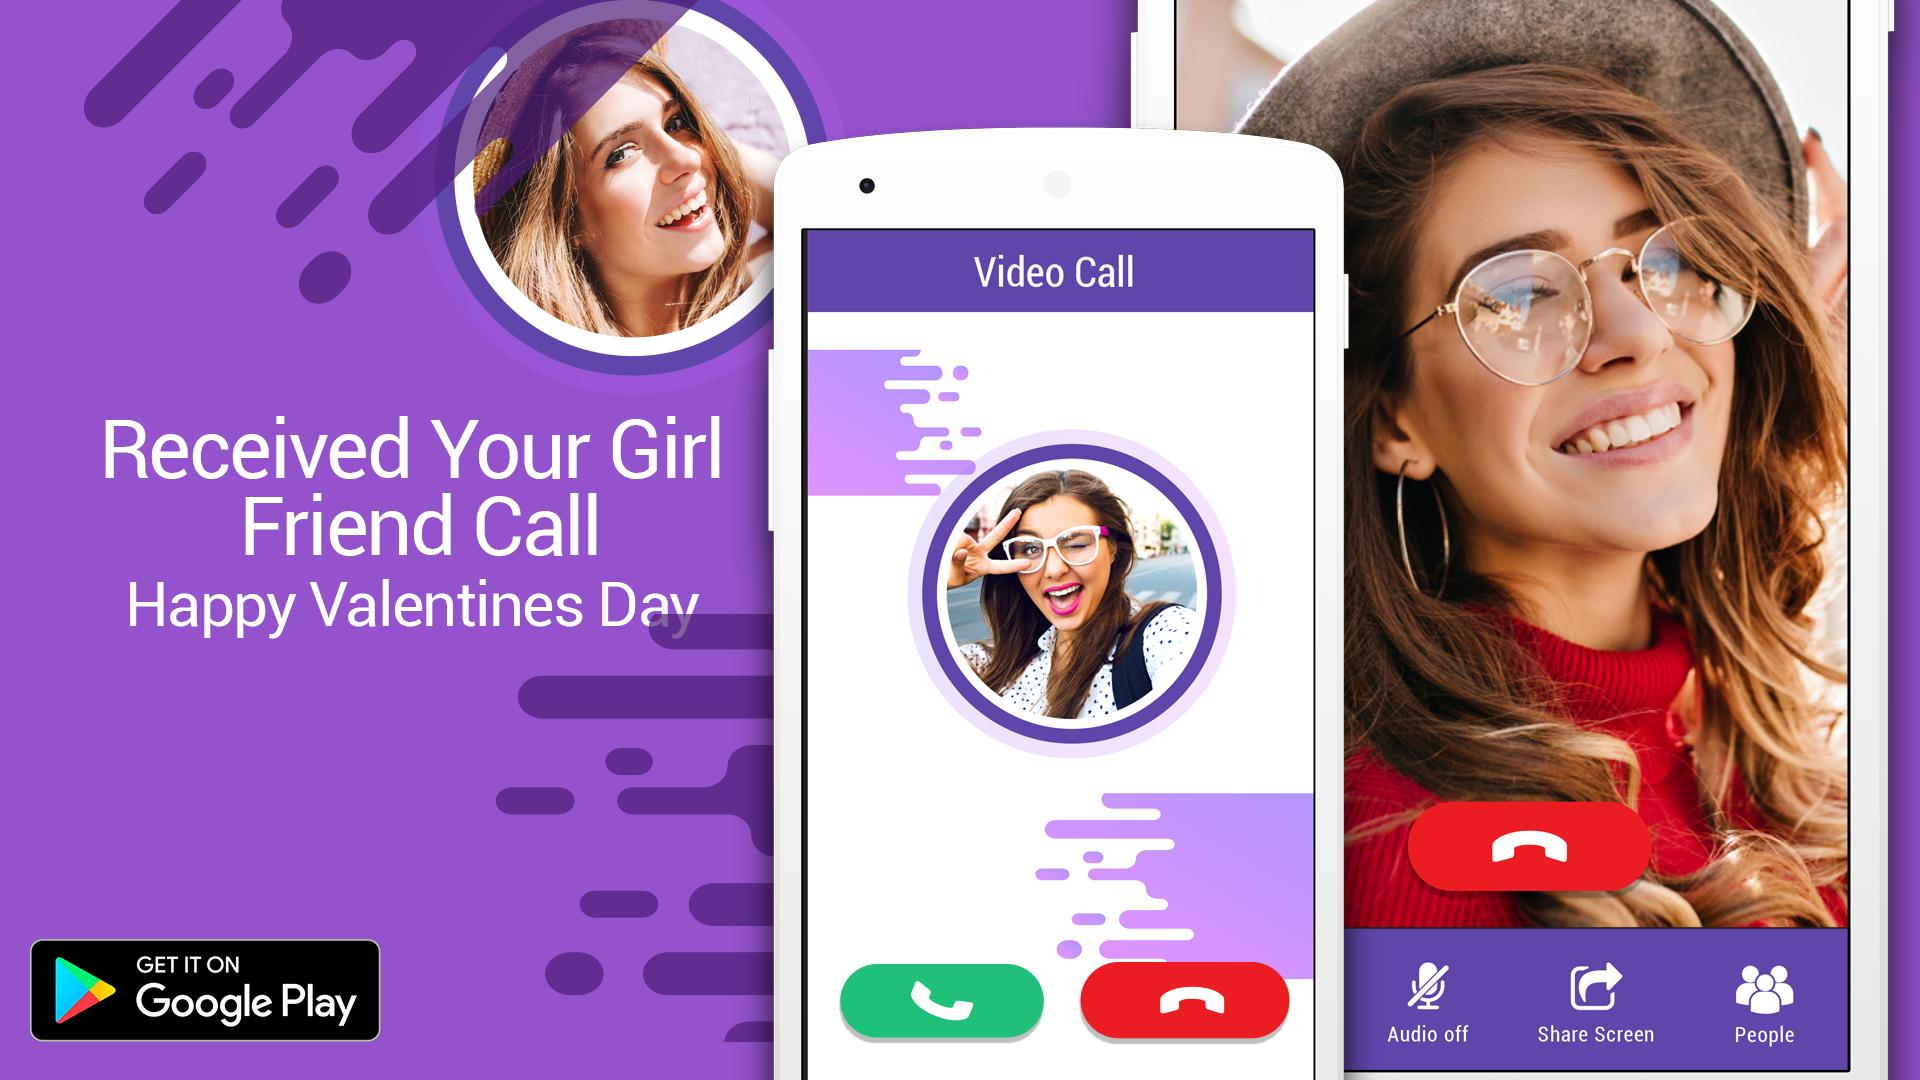 Video call your girlfriend